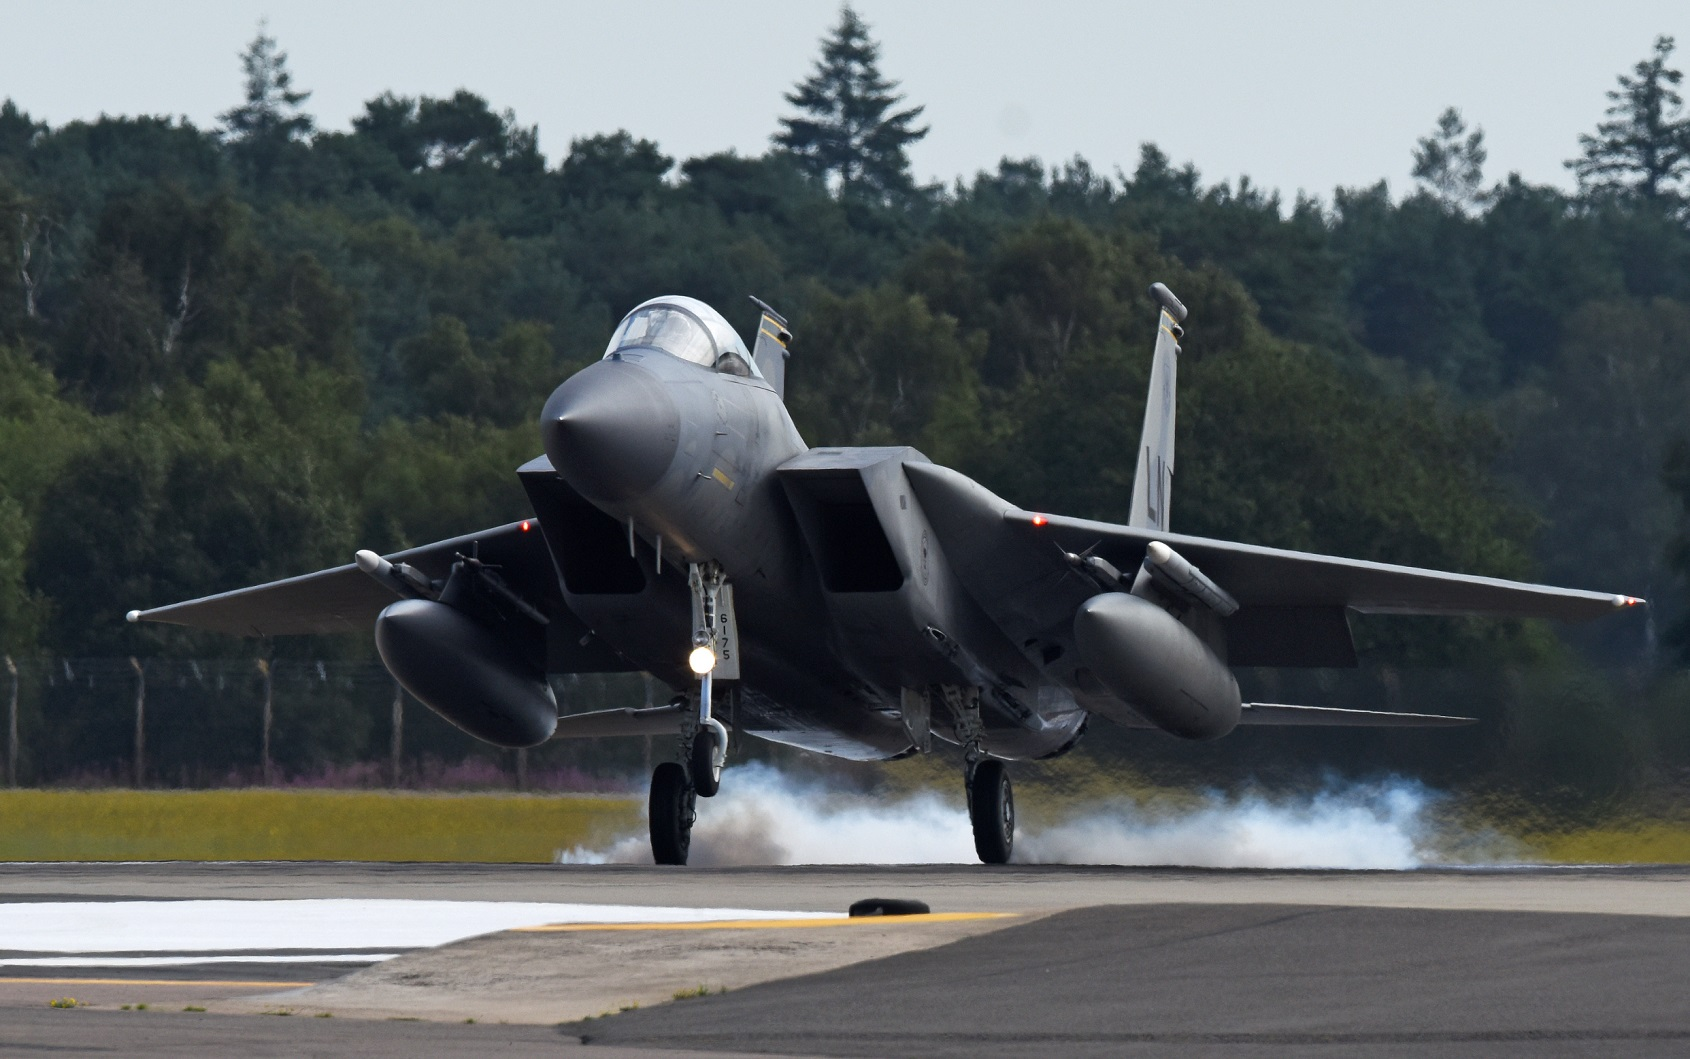 U.S. Air Force will increase flying operations over East Anglia